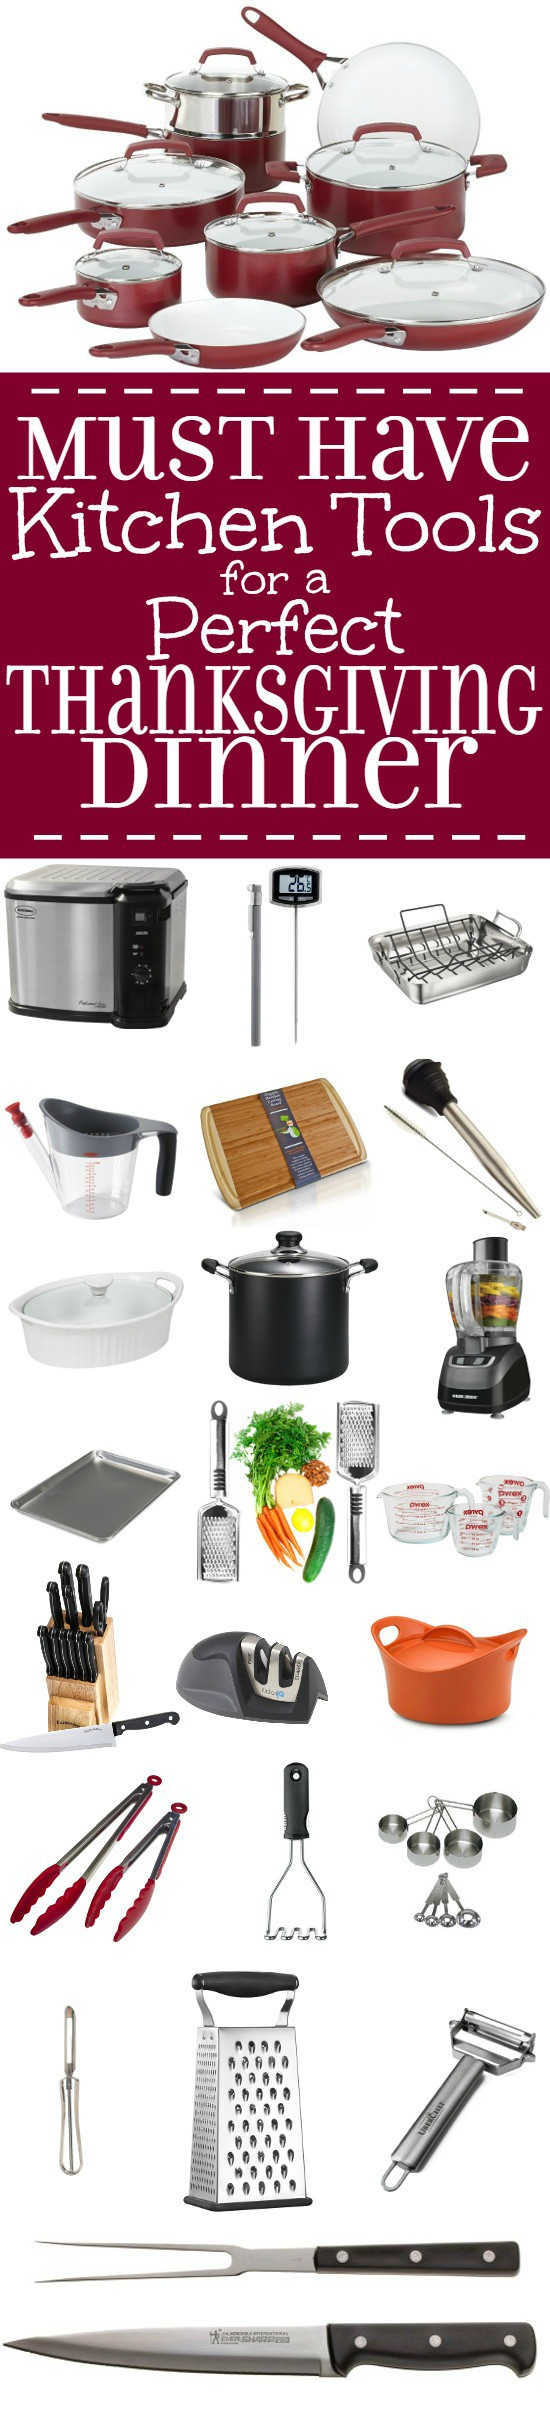 Must Have Kitchen Tools must have kitchen tools for a perfect thanksgiving dinner | the